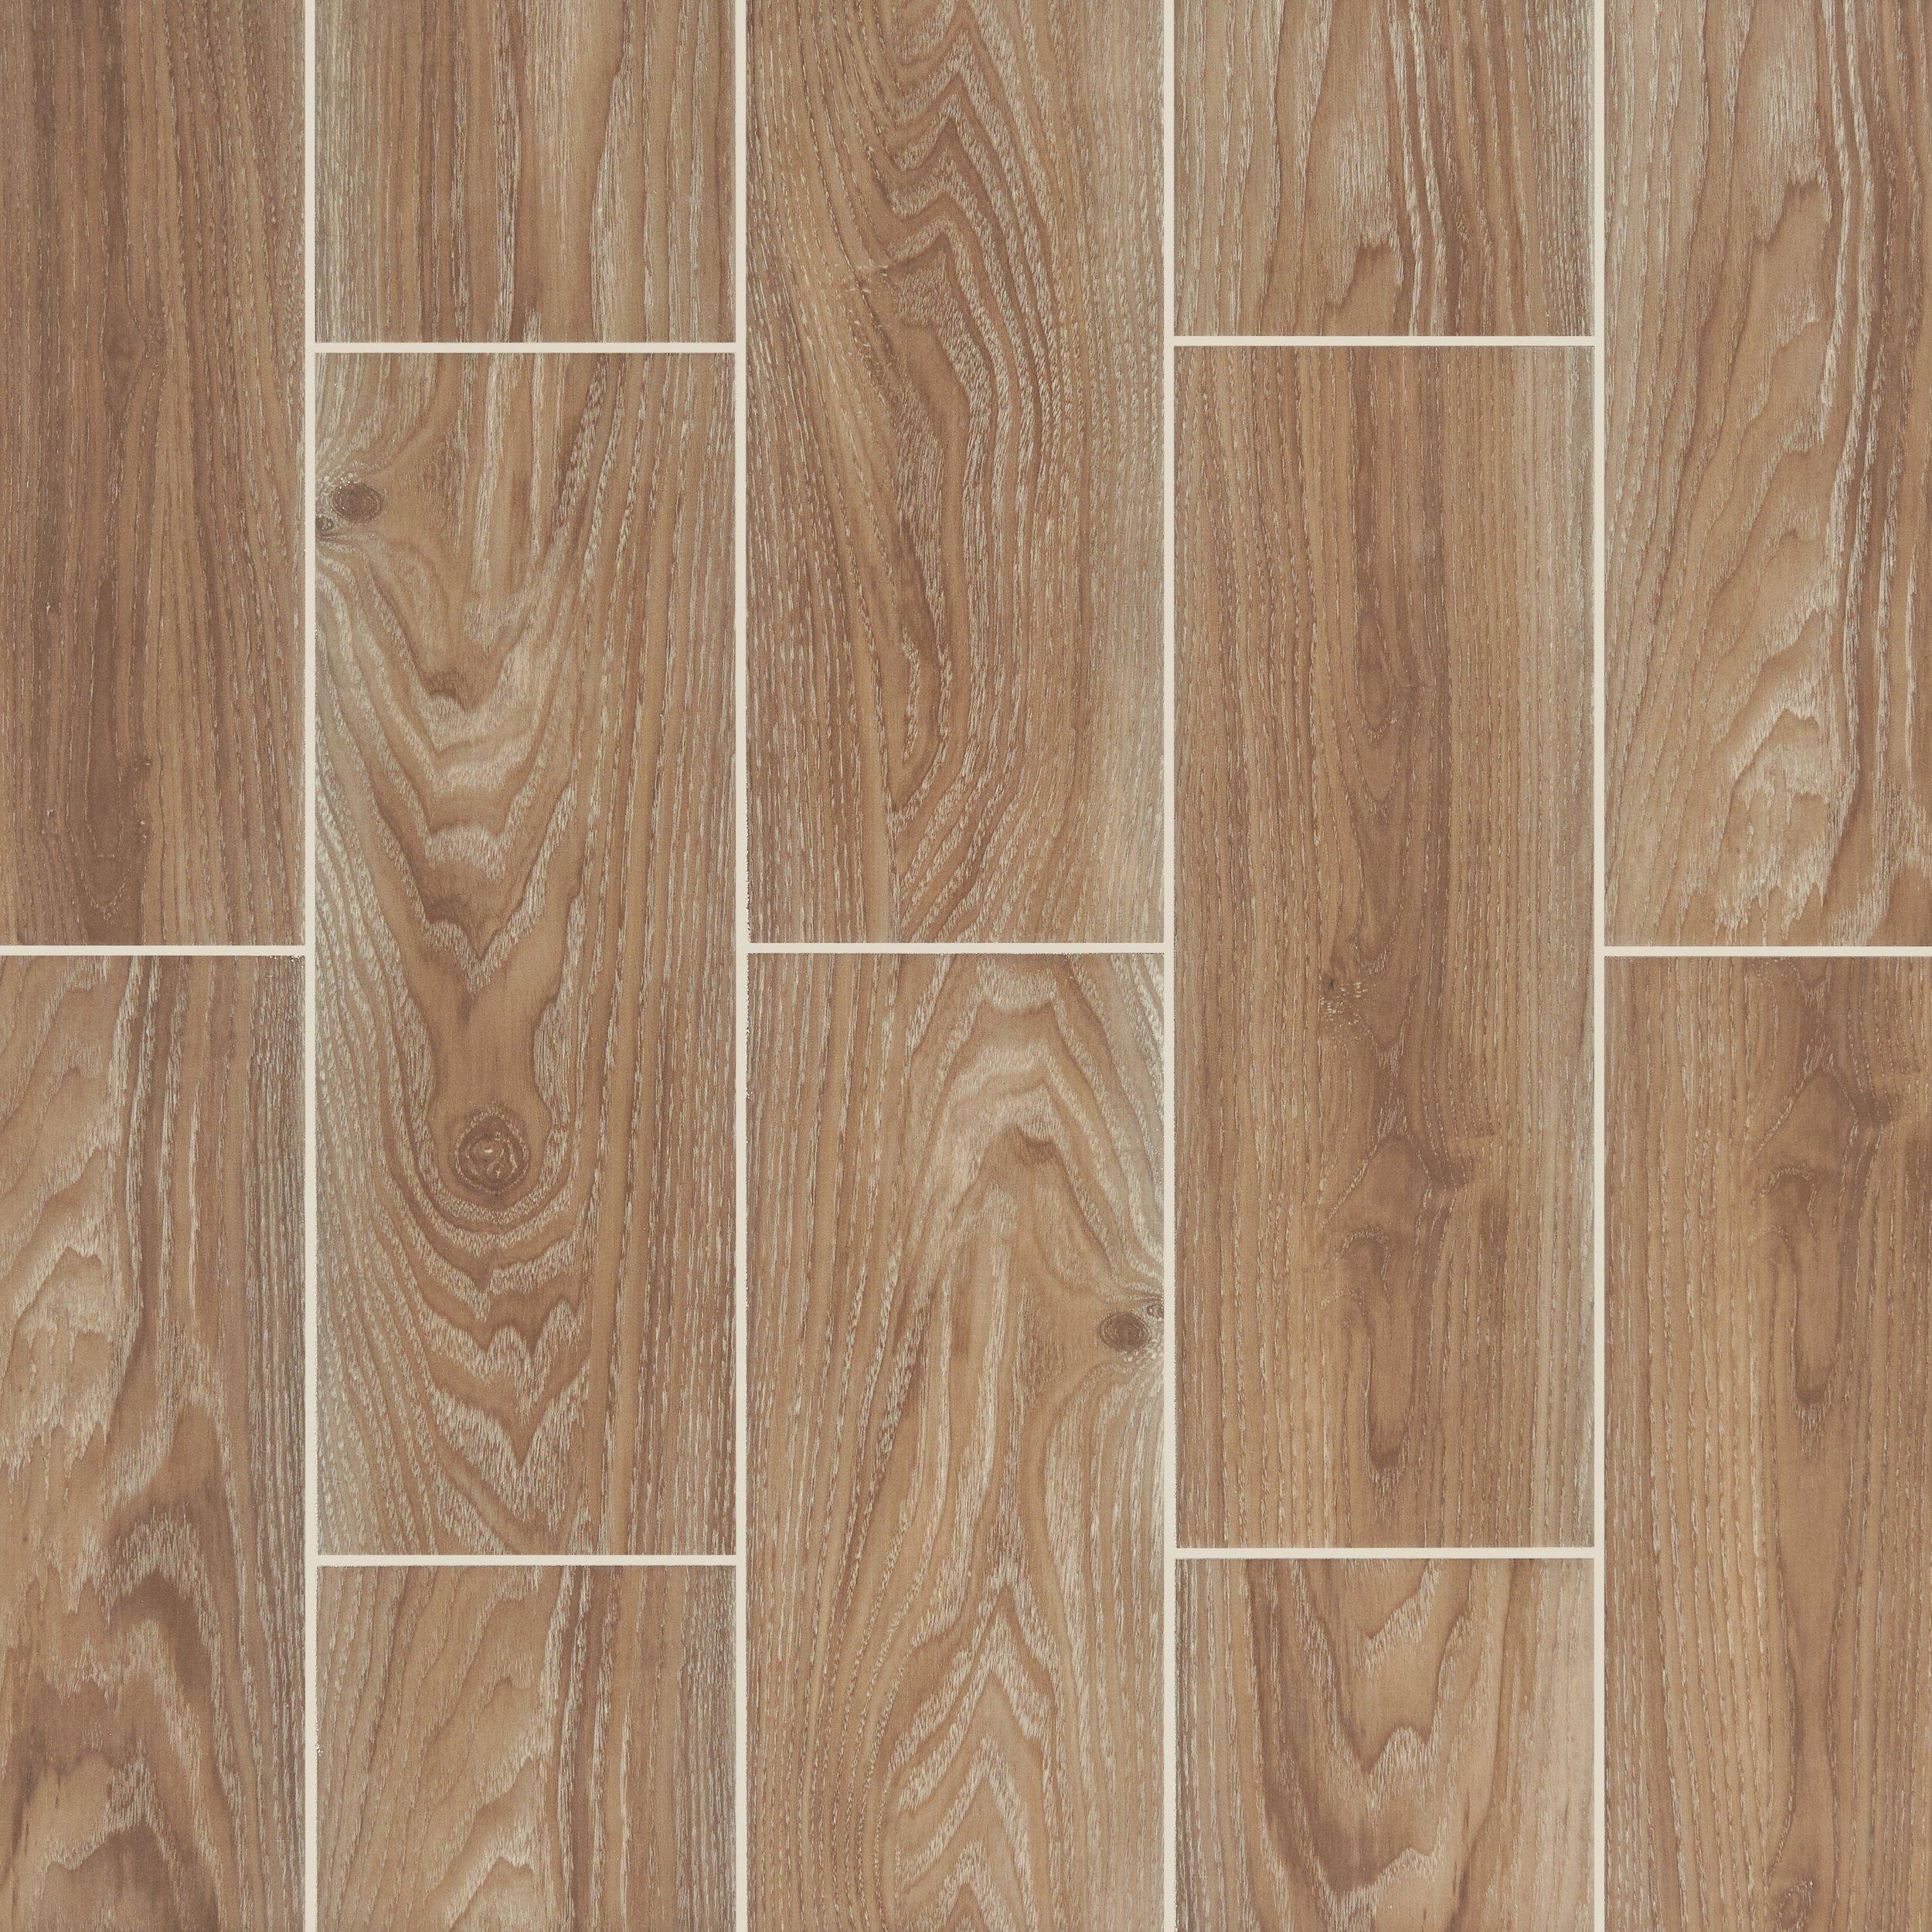 Wood like tile floors gurus floor for Decor flooring